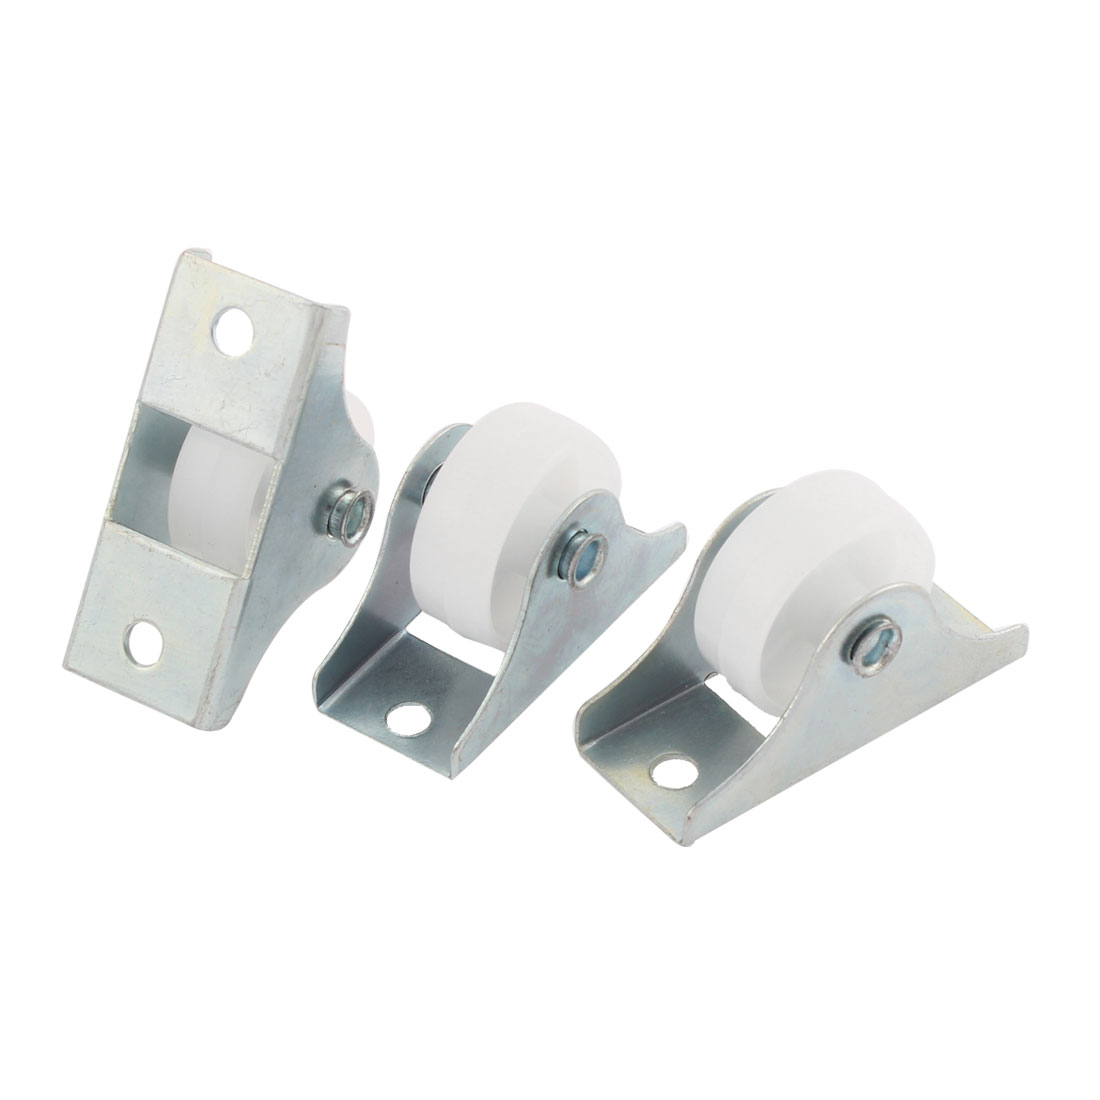 "3Pcs 0.9"" Diameter White Plastic Wheel Rectangle Mount Plate Swivel Caster"